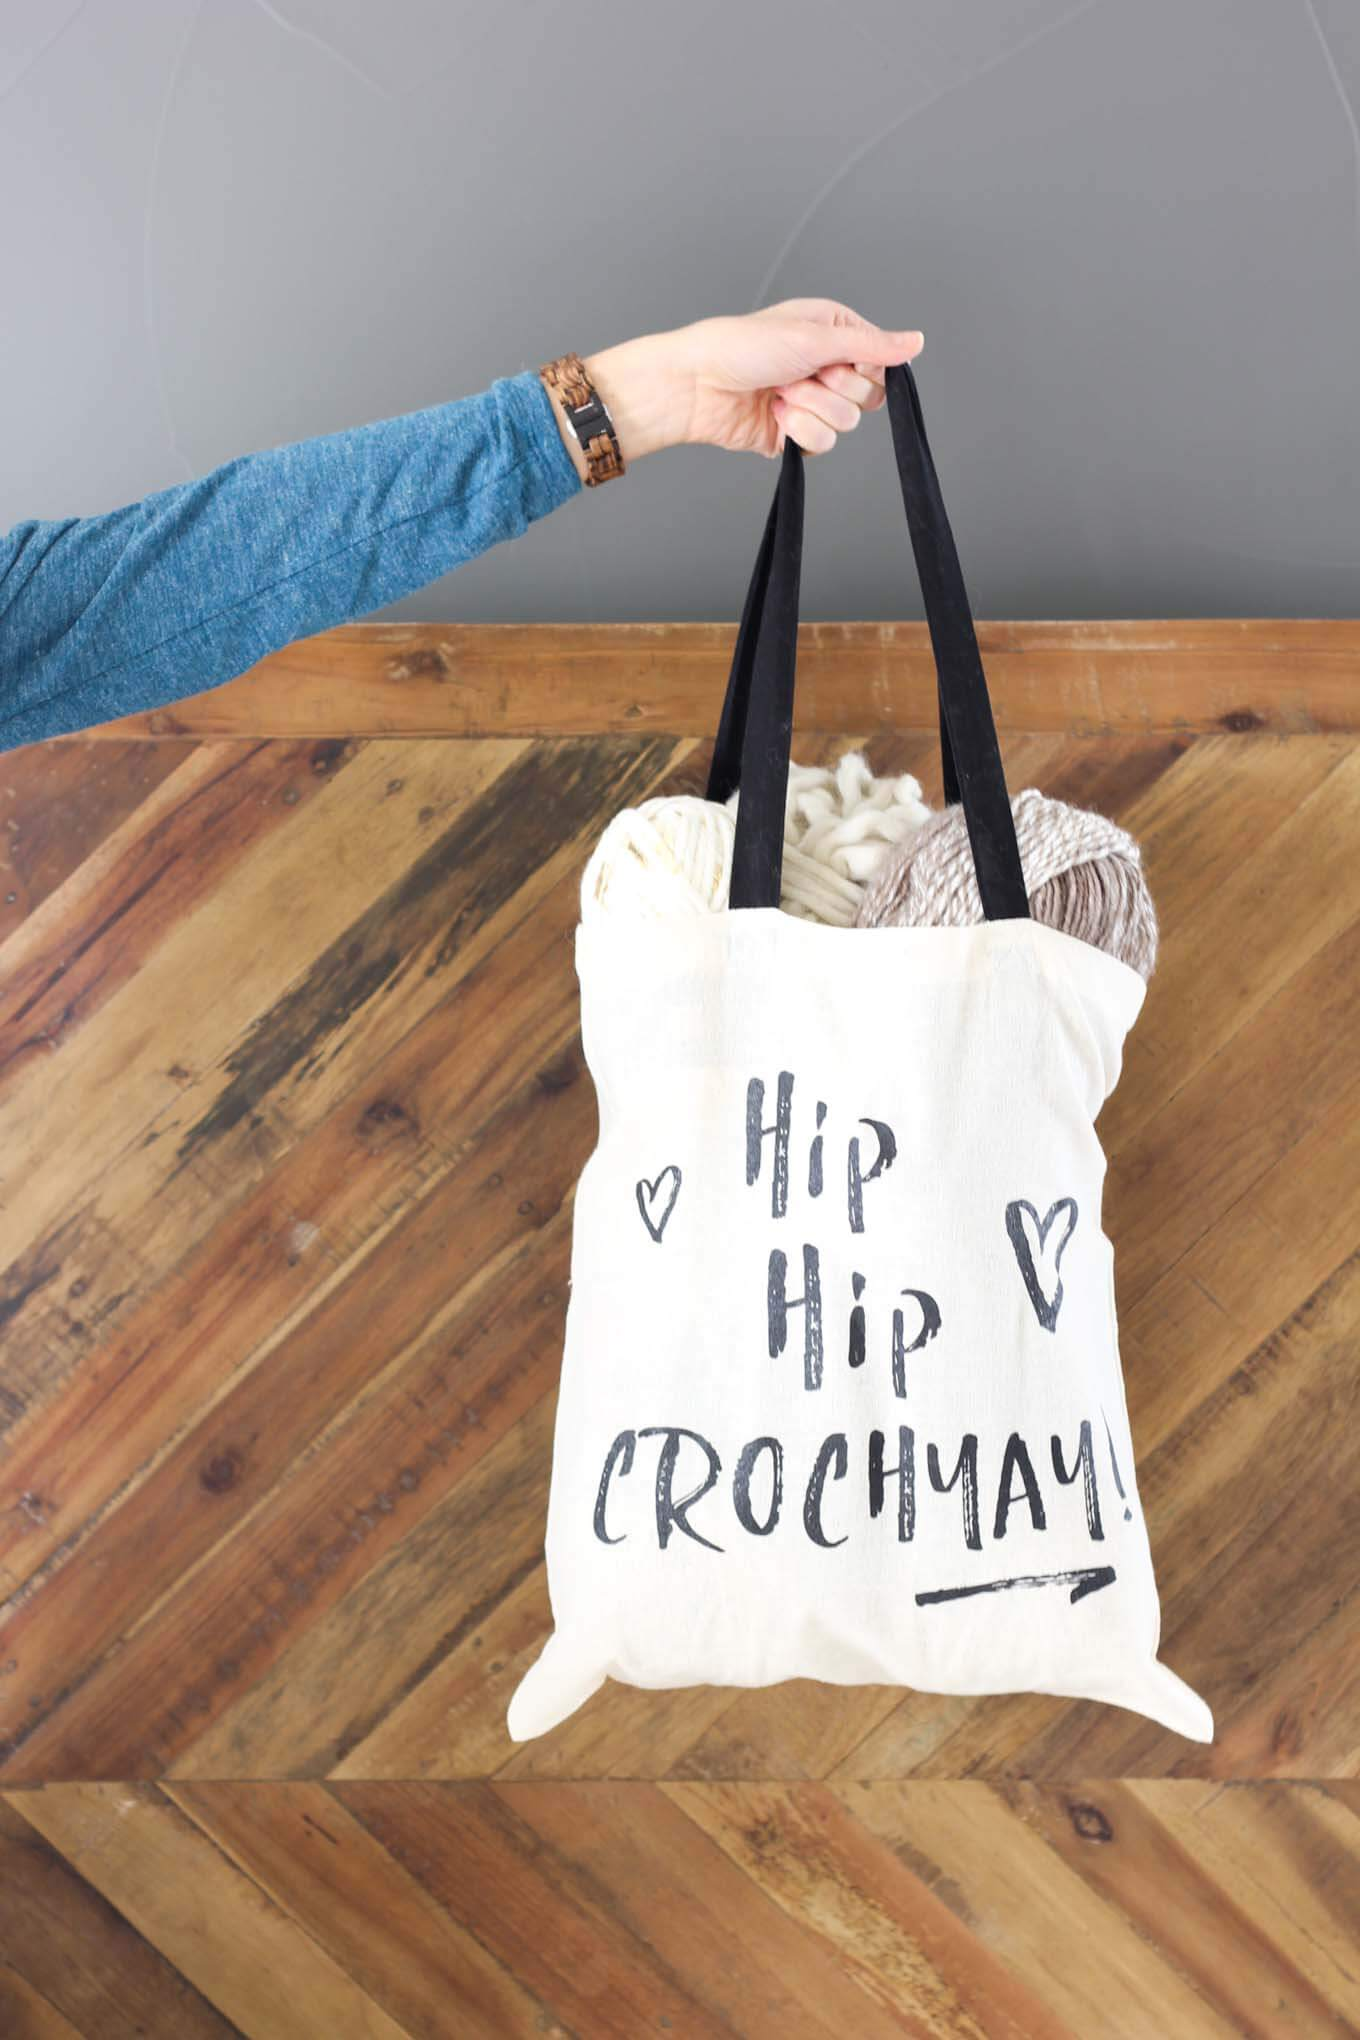 Hip Hip Crochyay tote bag for carrying all your latest projects